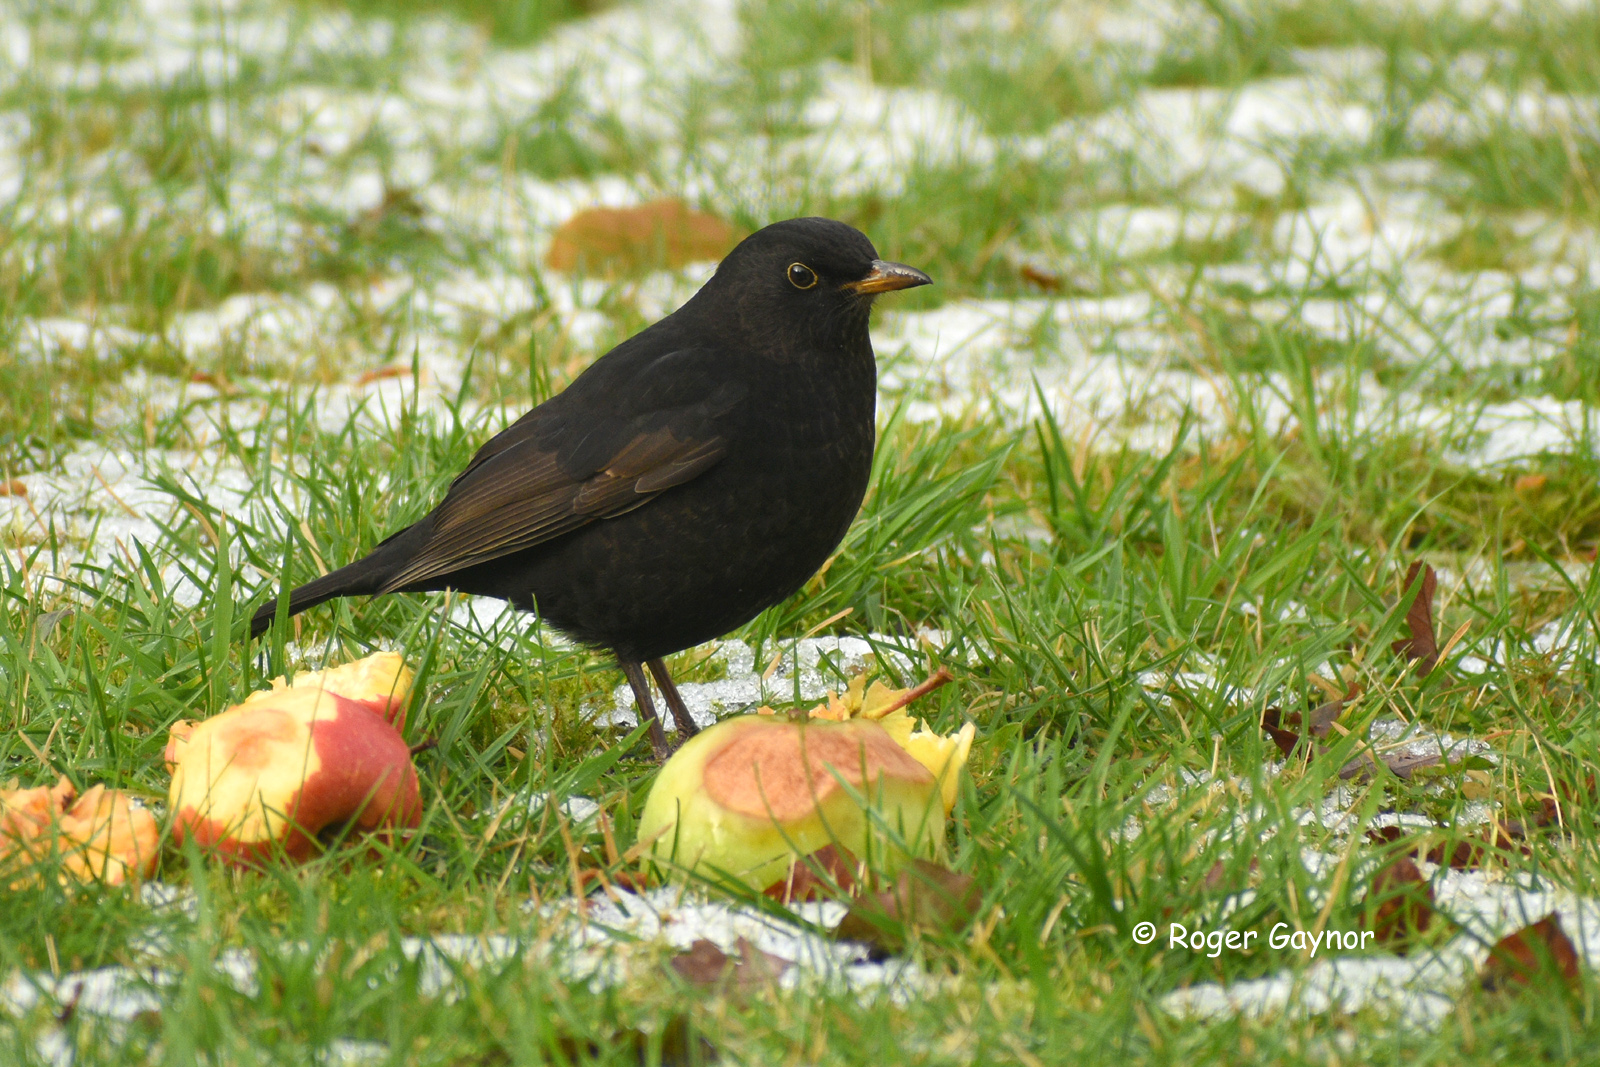 blackbird feeding on apples at Wrenthorpe Road.